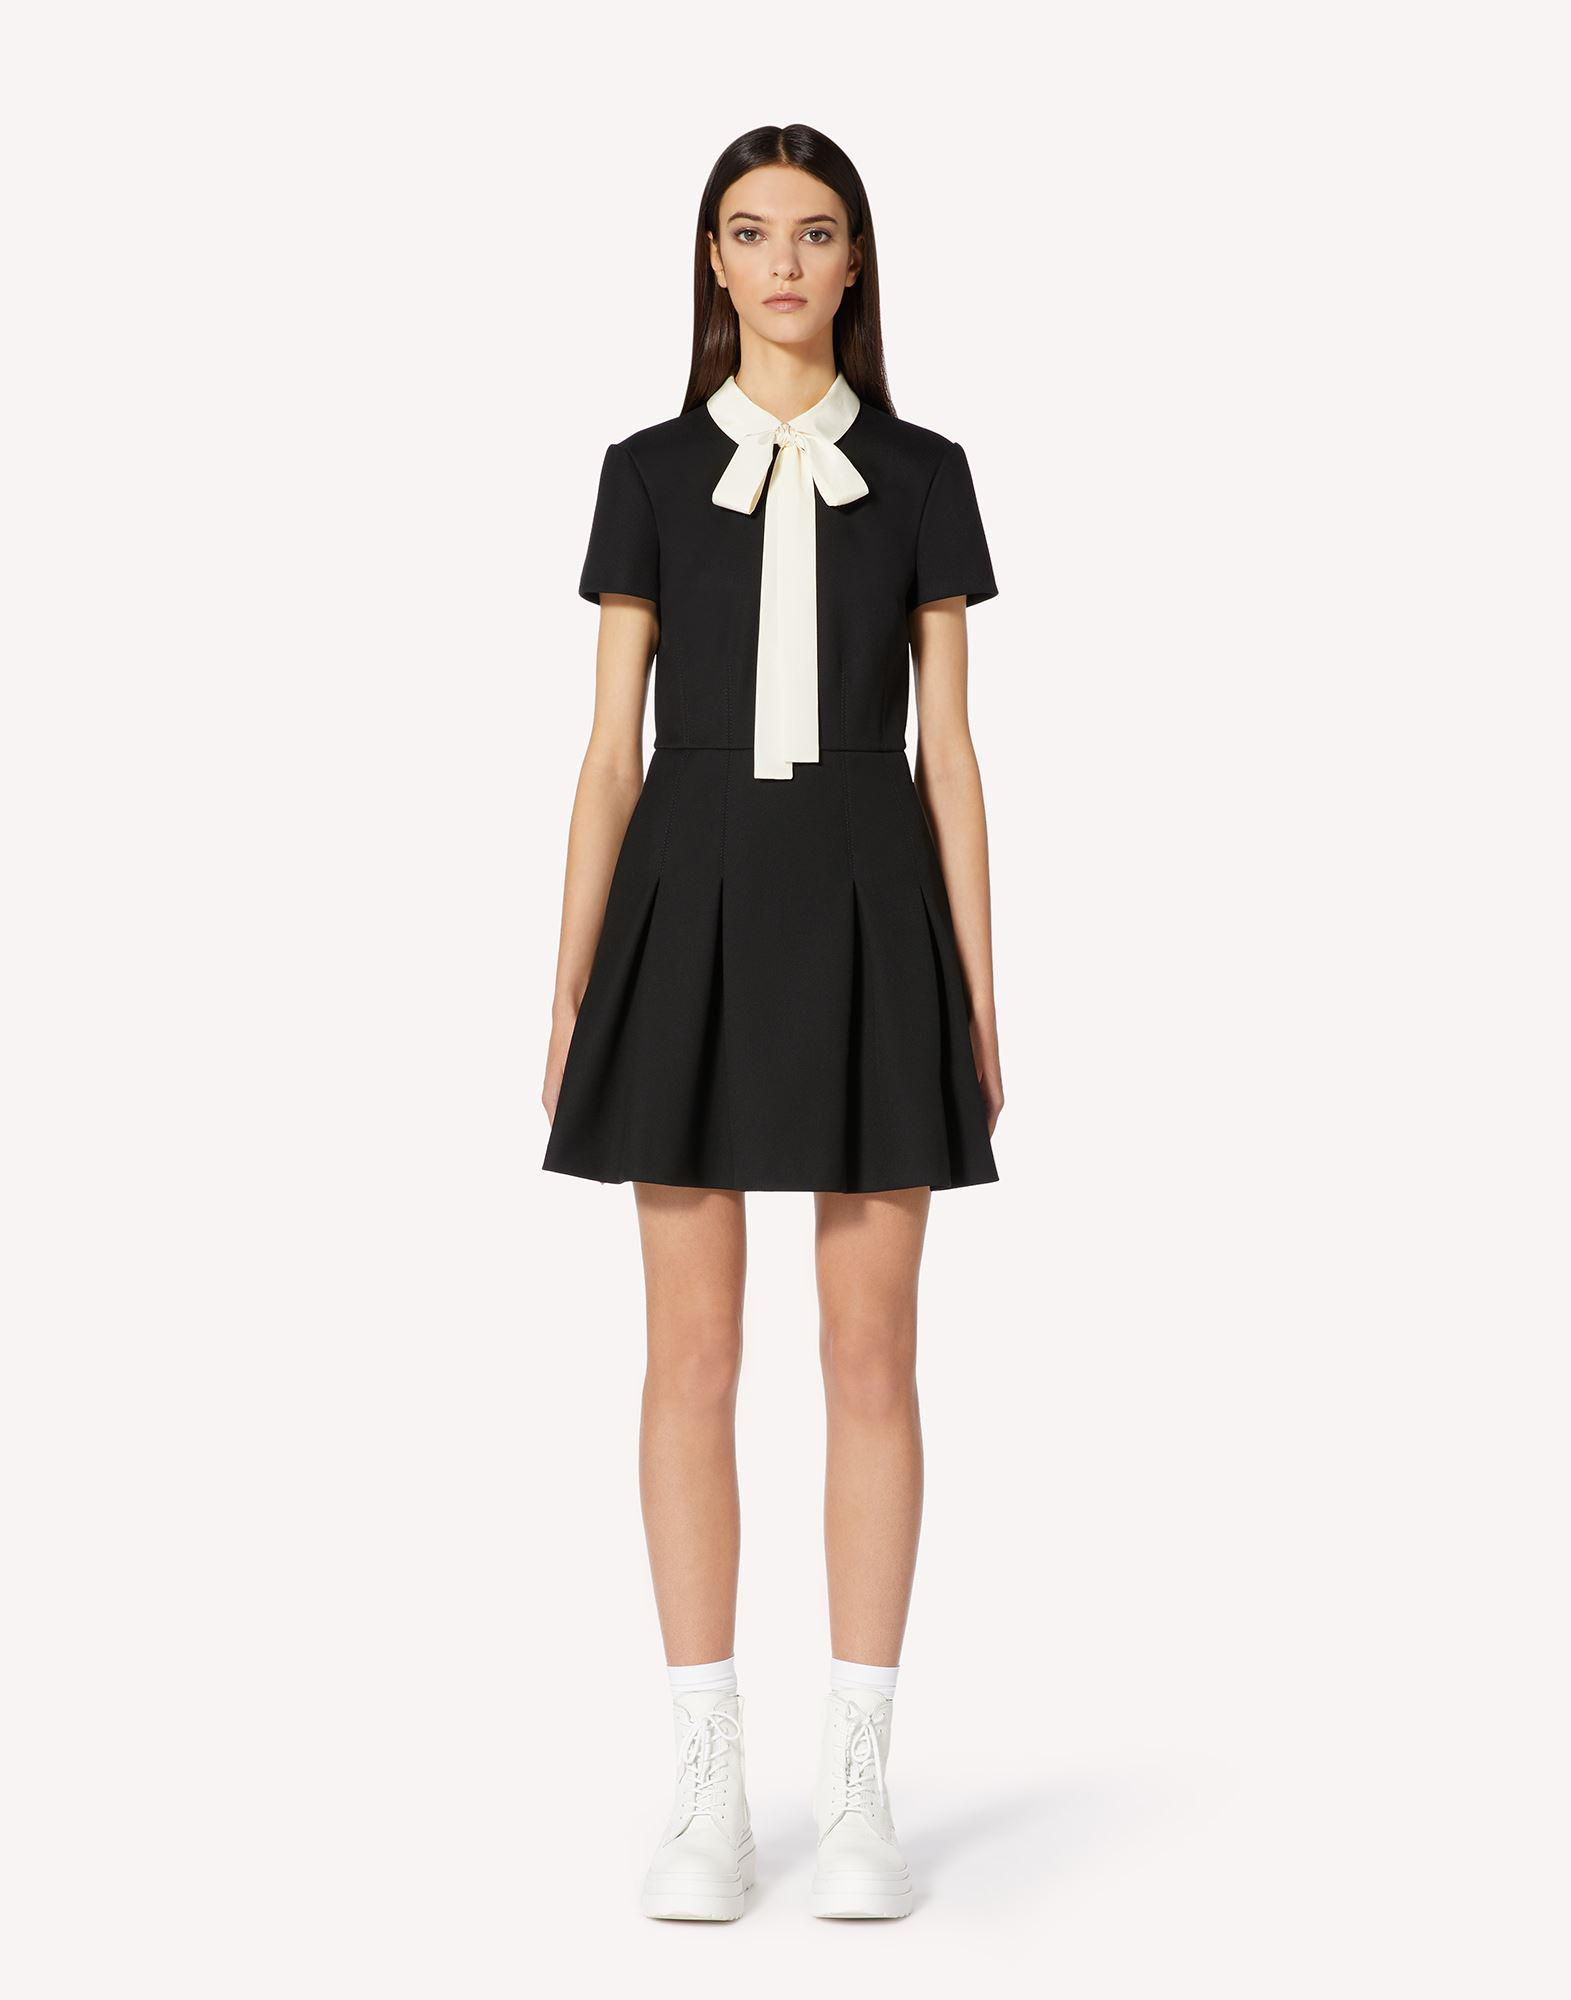 TRICOTINE DRESS WITH COLLAR DETAIL